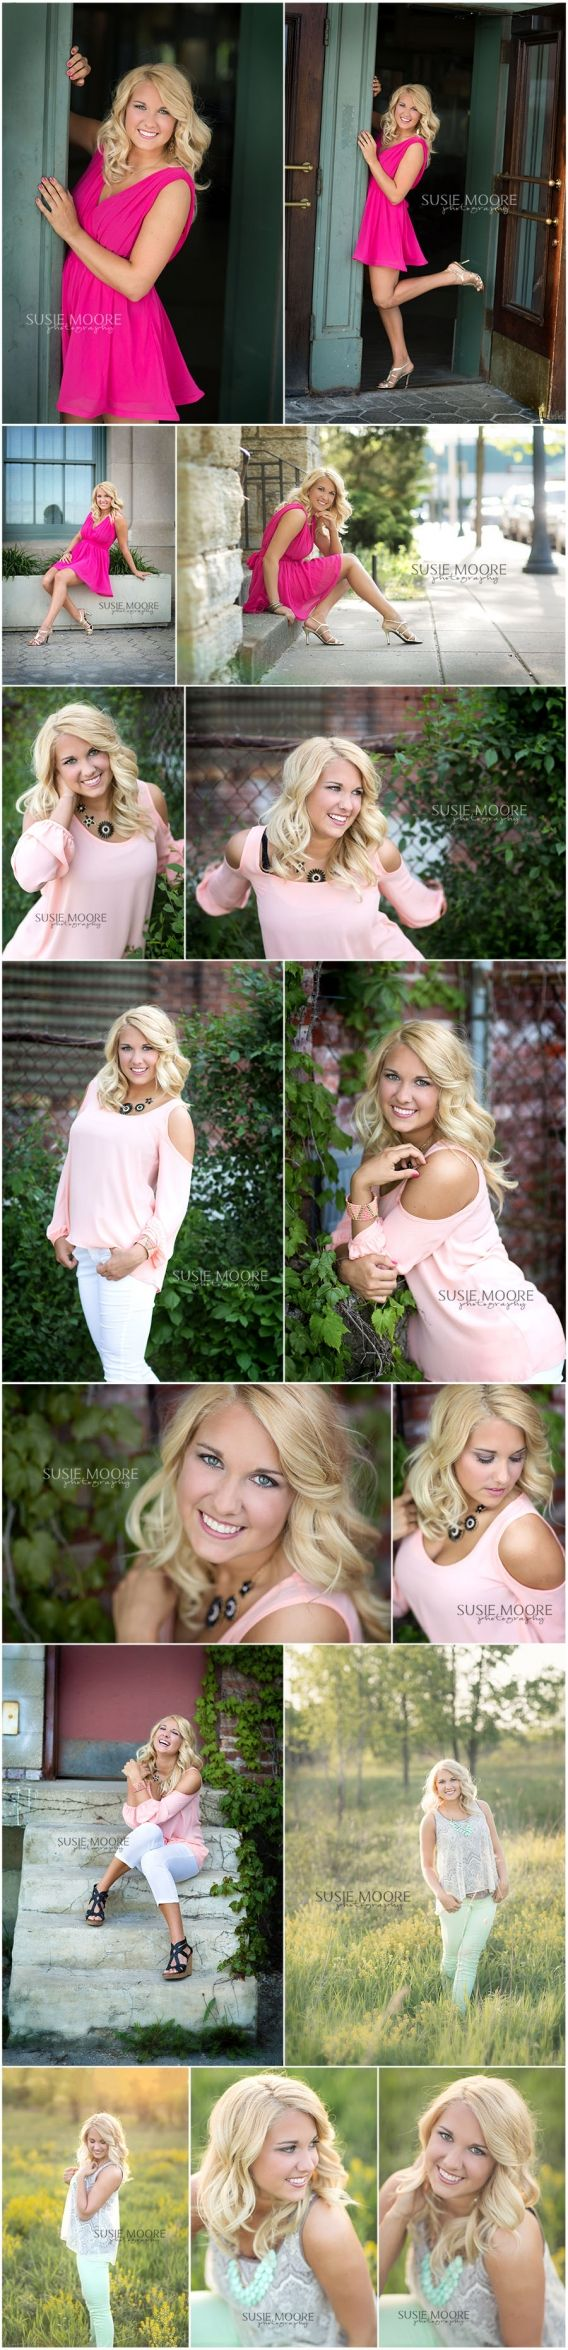 Morgan | Lincoln-Way Central High School | Carmel IN Senior Photographer | Susie Moore Photography